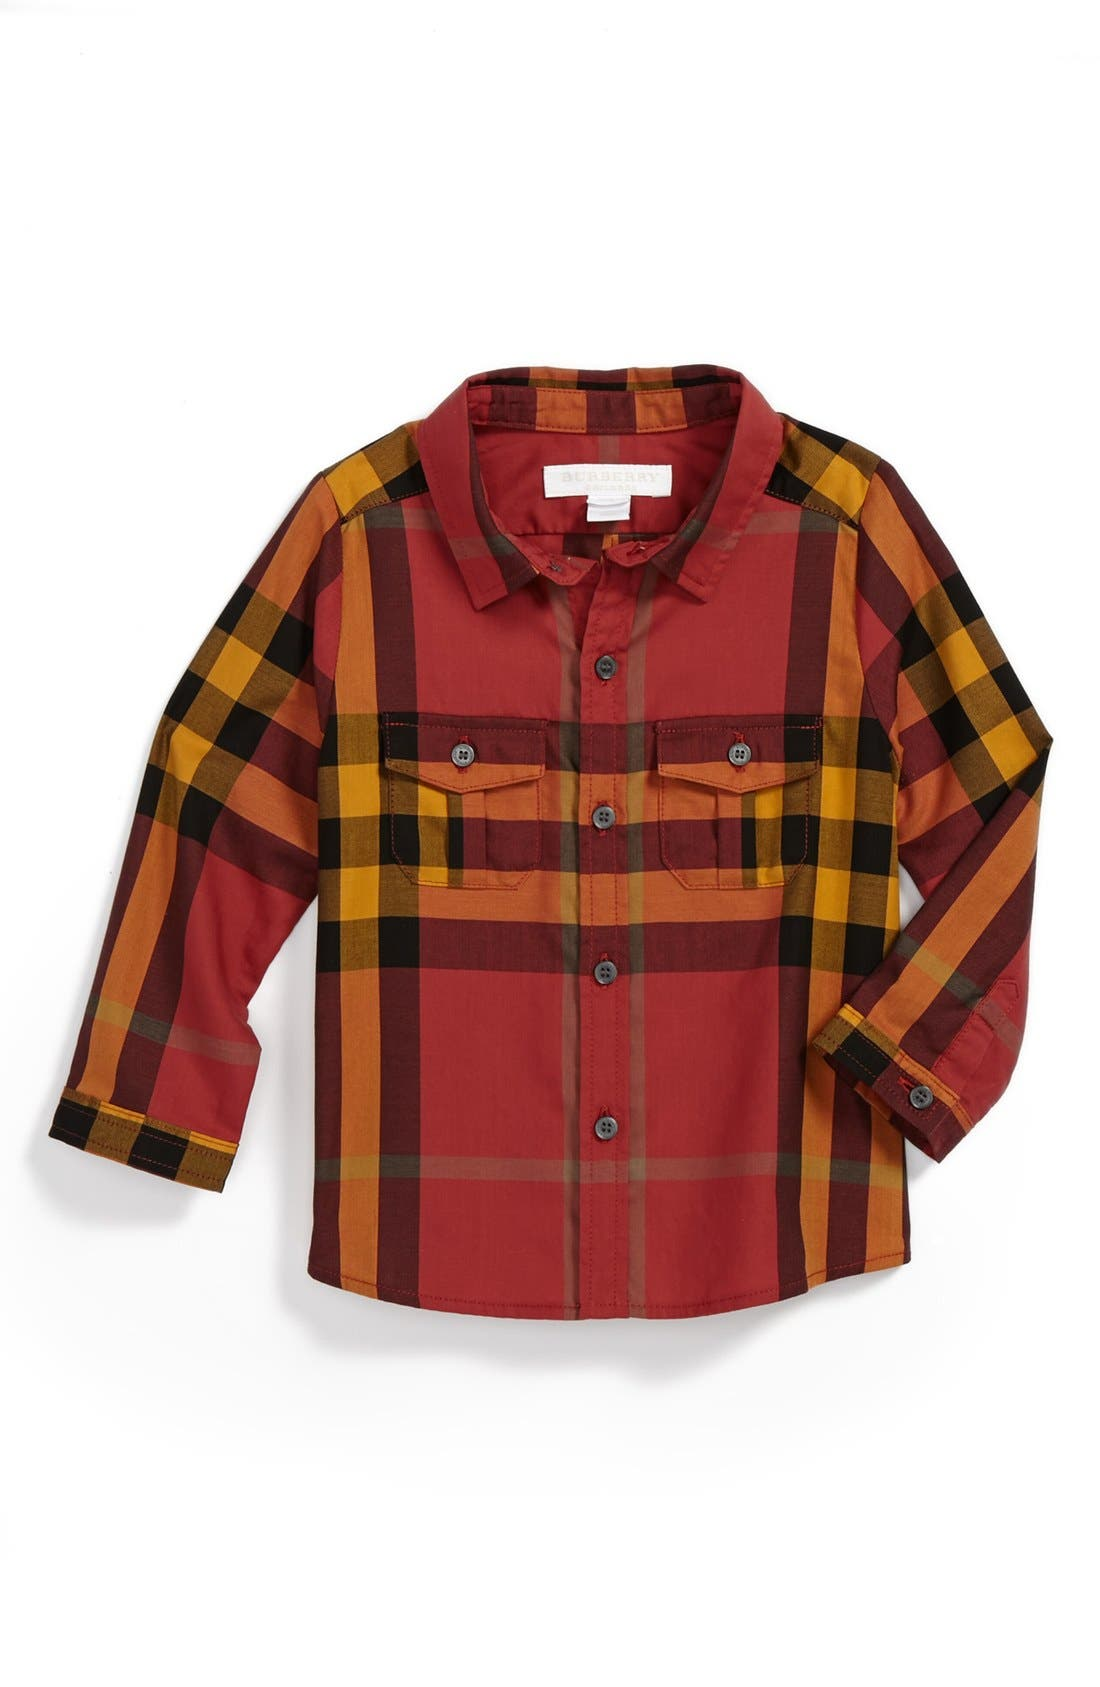 Alternate Image 1 Selected - Burberry Woven Shirt (Baby Boys)